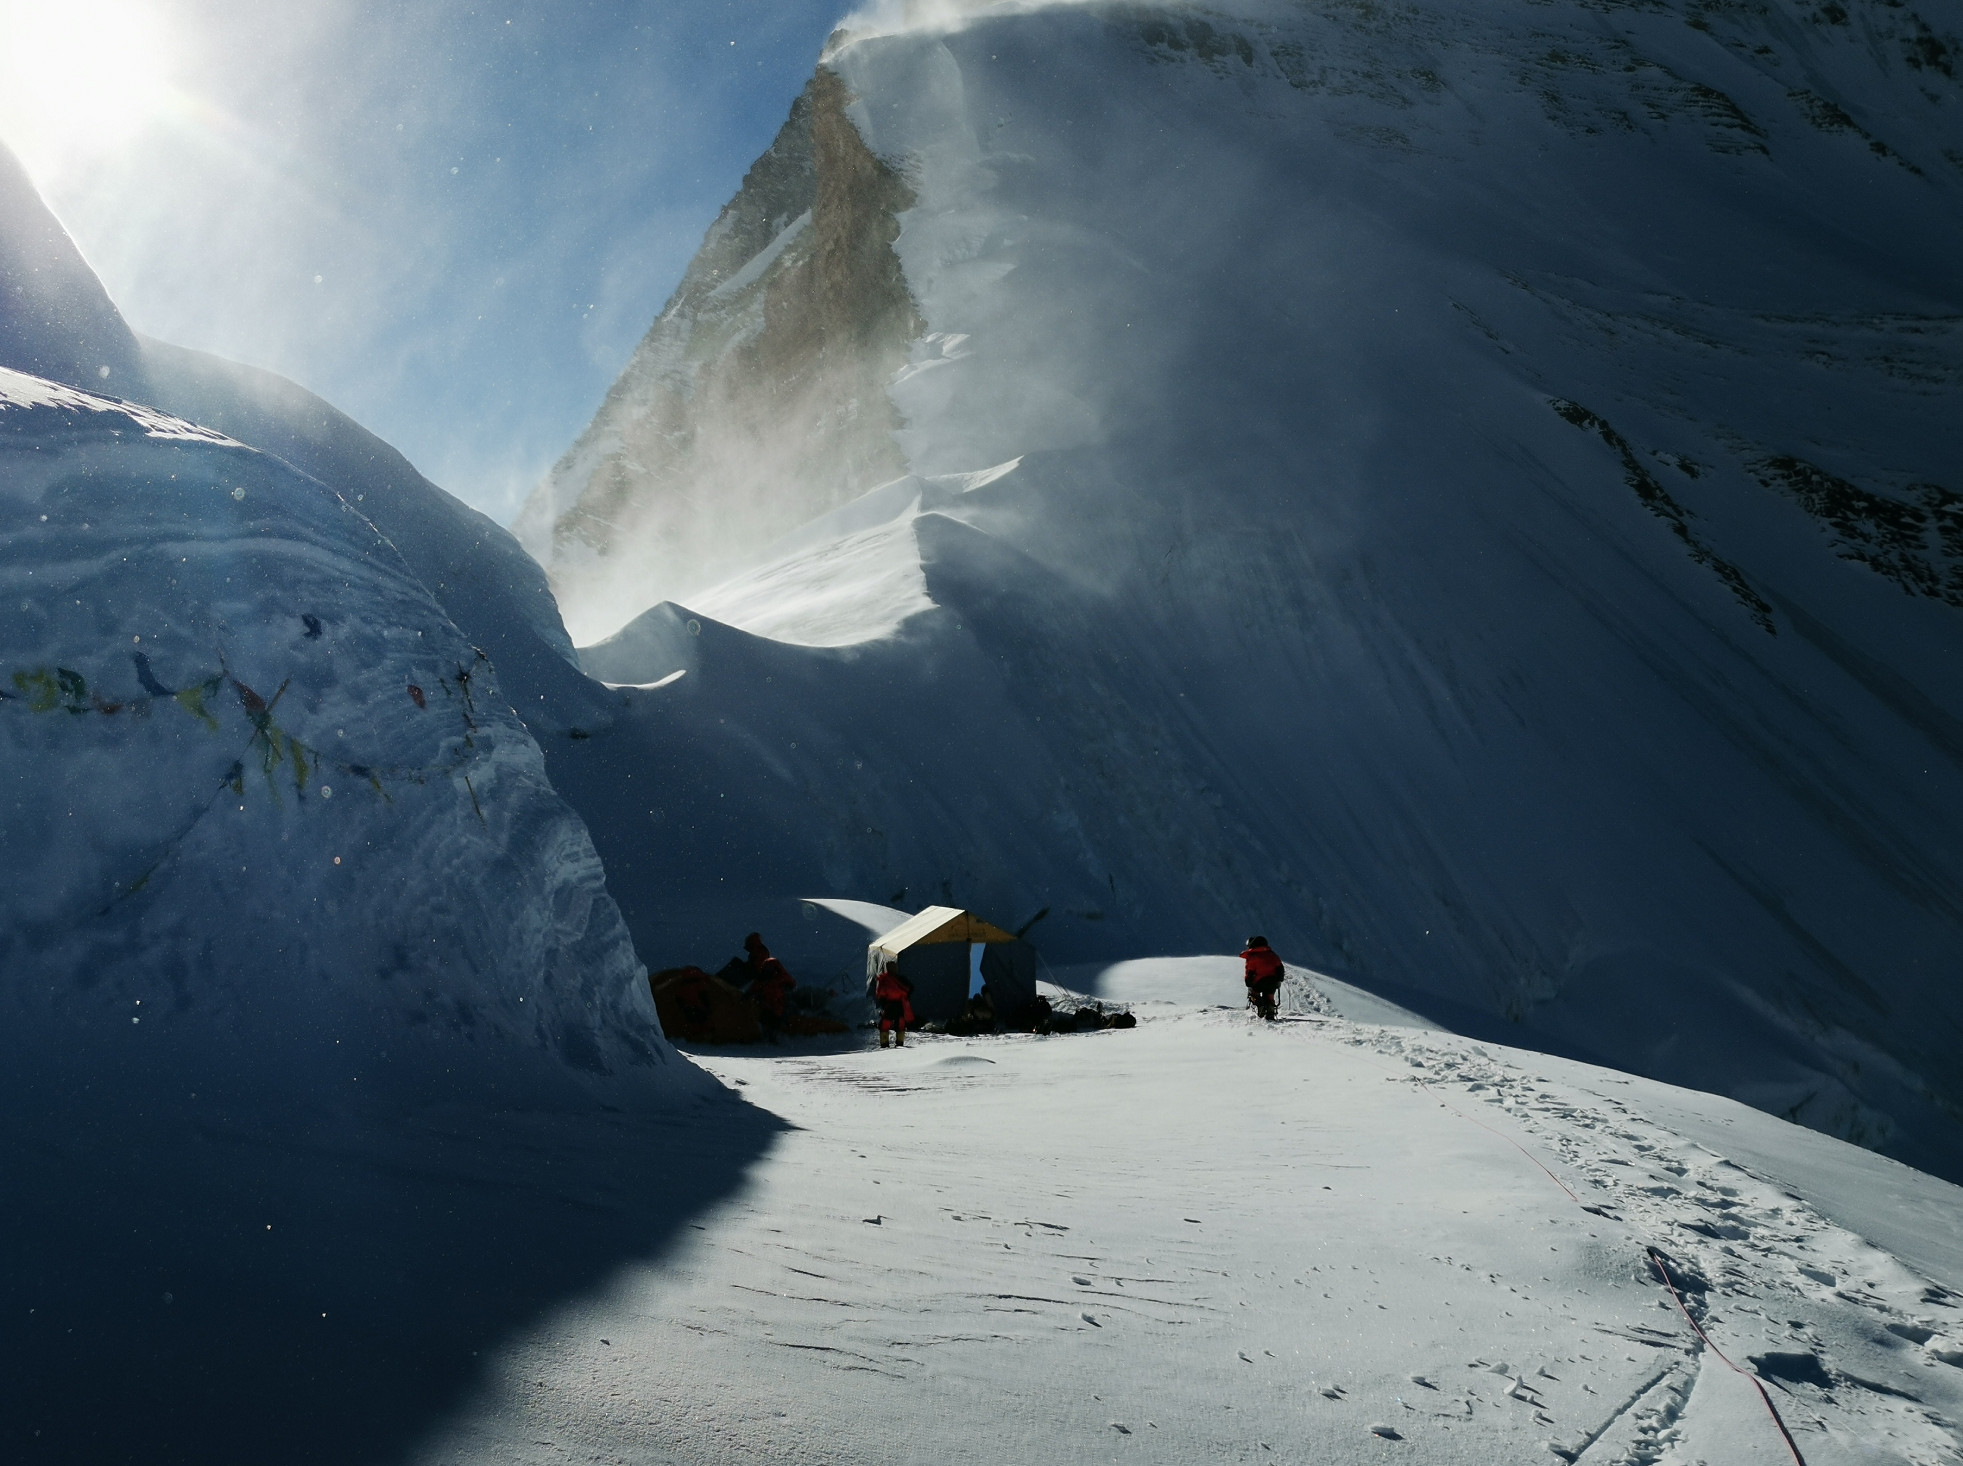 Mt Qomolangma surveyors arrived at base camp at a height of 7,028 meters